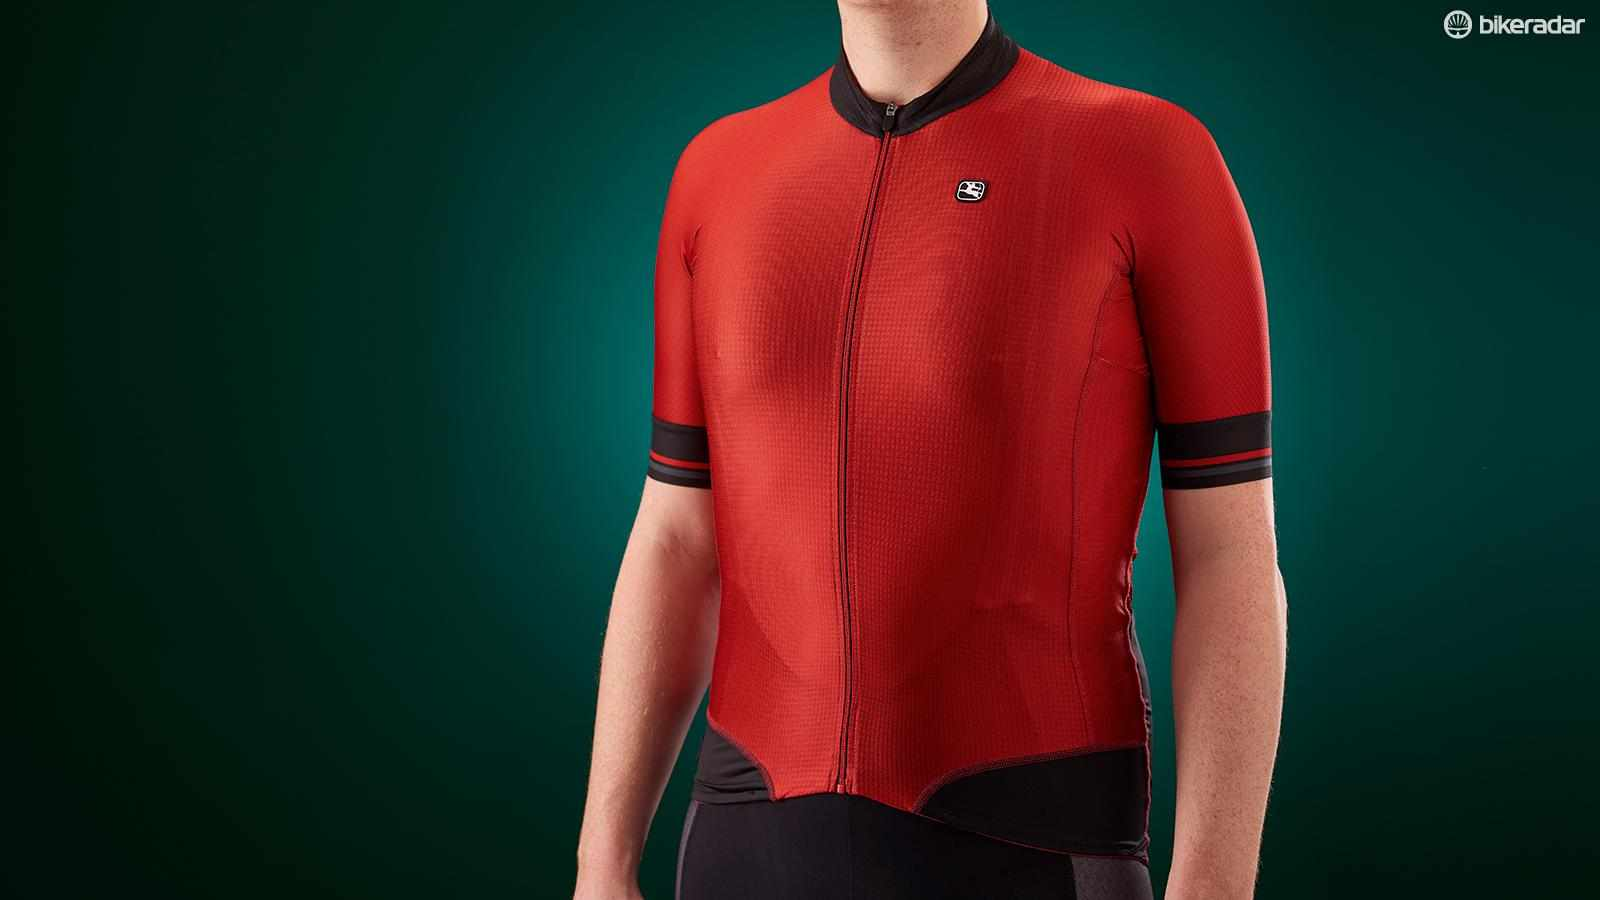 It's not the most roomy of jerseys, but get the fit right and the performance is top-notch